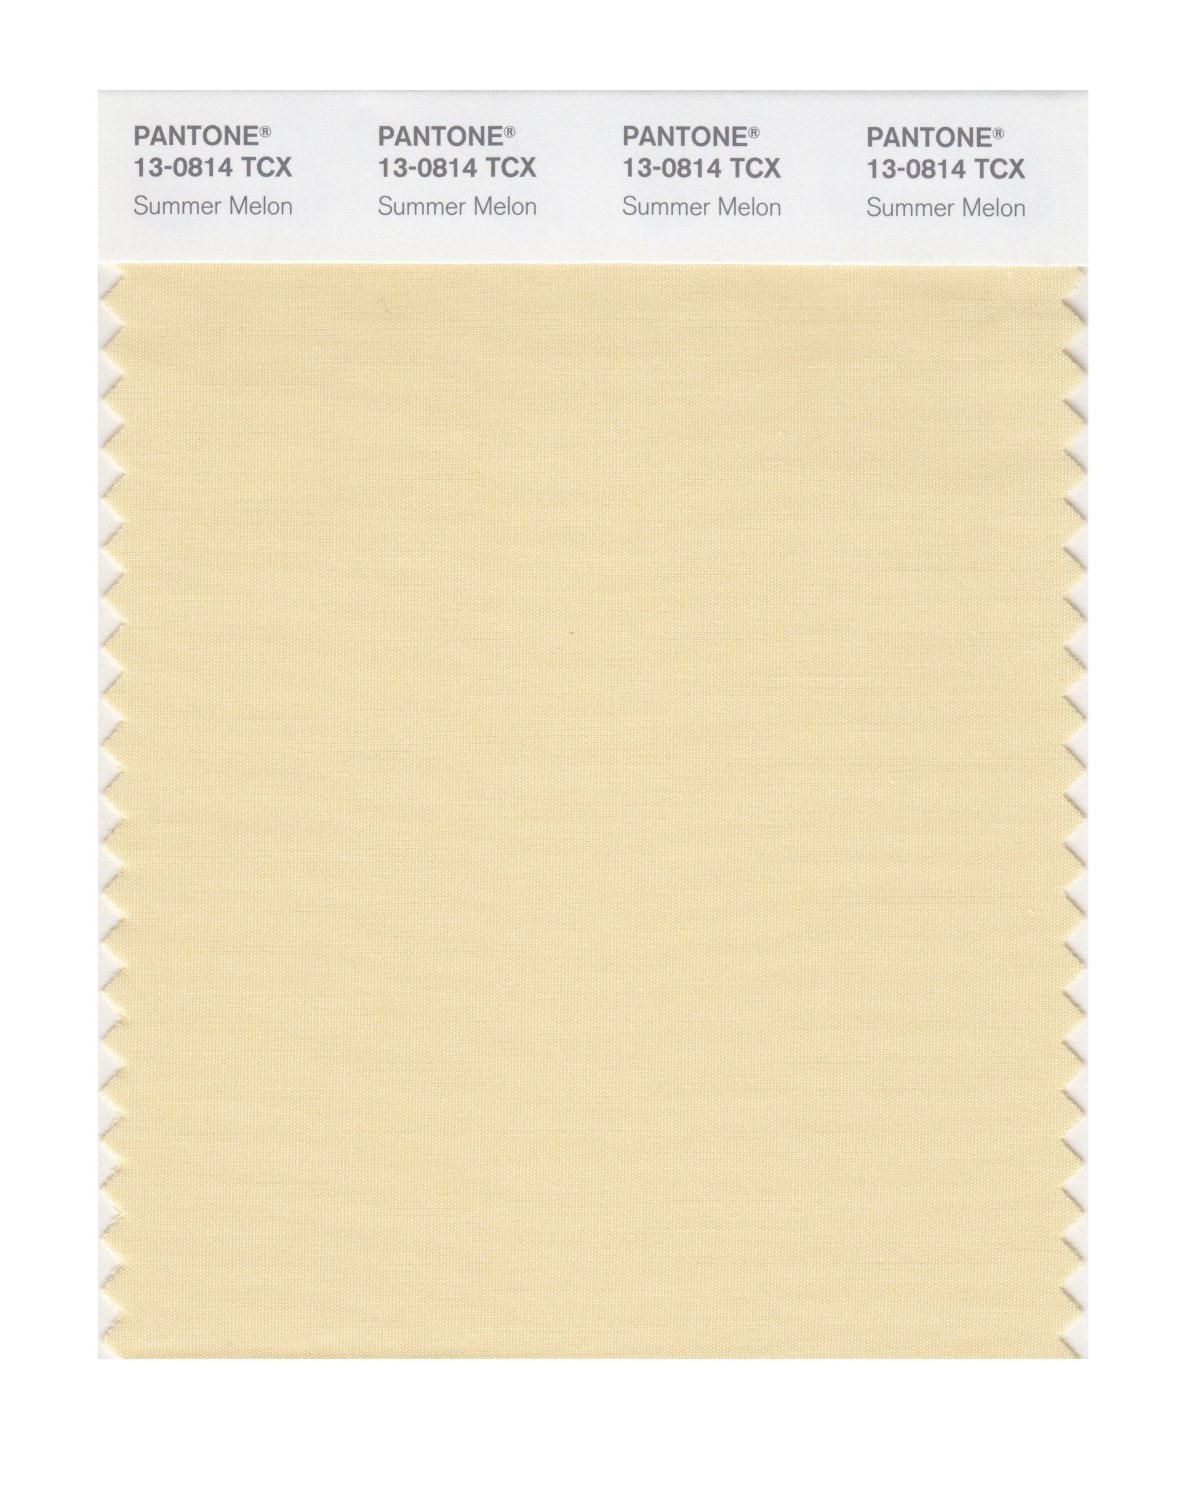 Pantone Smart Swatch 13-0814 Summer Melon